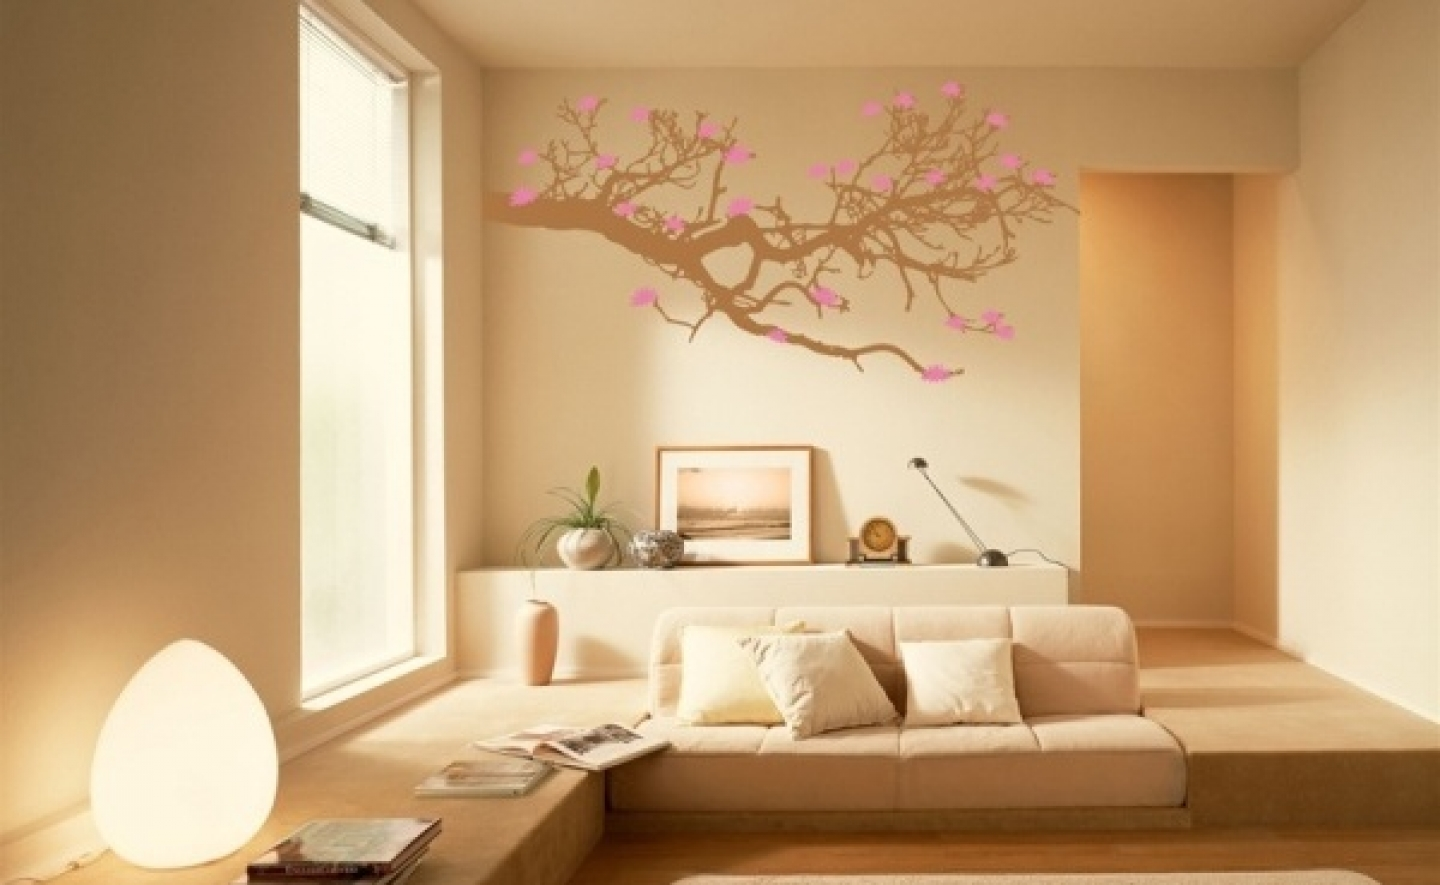 Appealing Design Of The Living Room Areas With Paint On The Wall Added With Brown Floor Ideas As Wall Paint Ideas